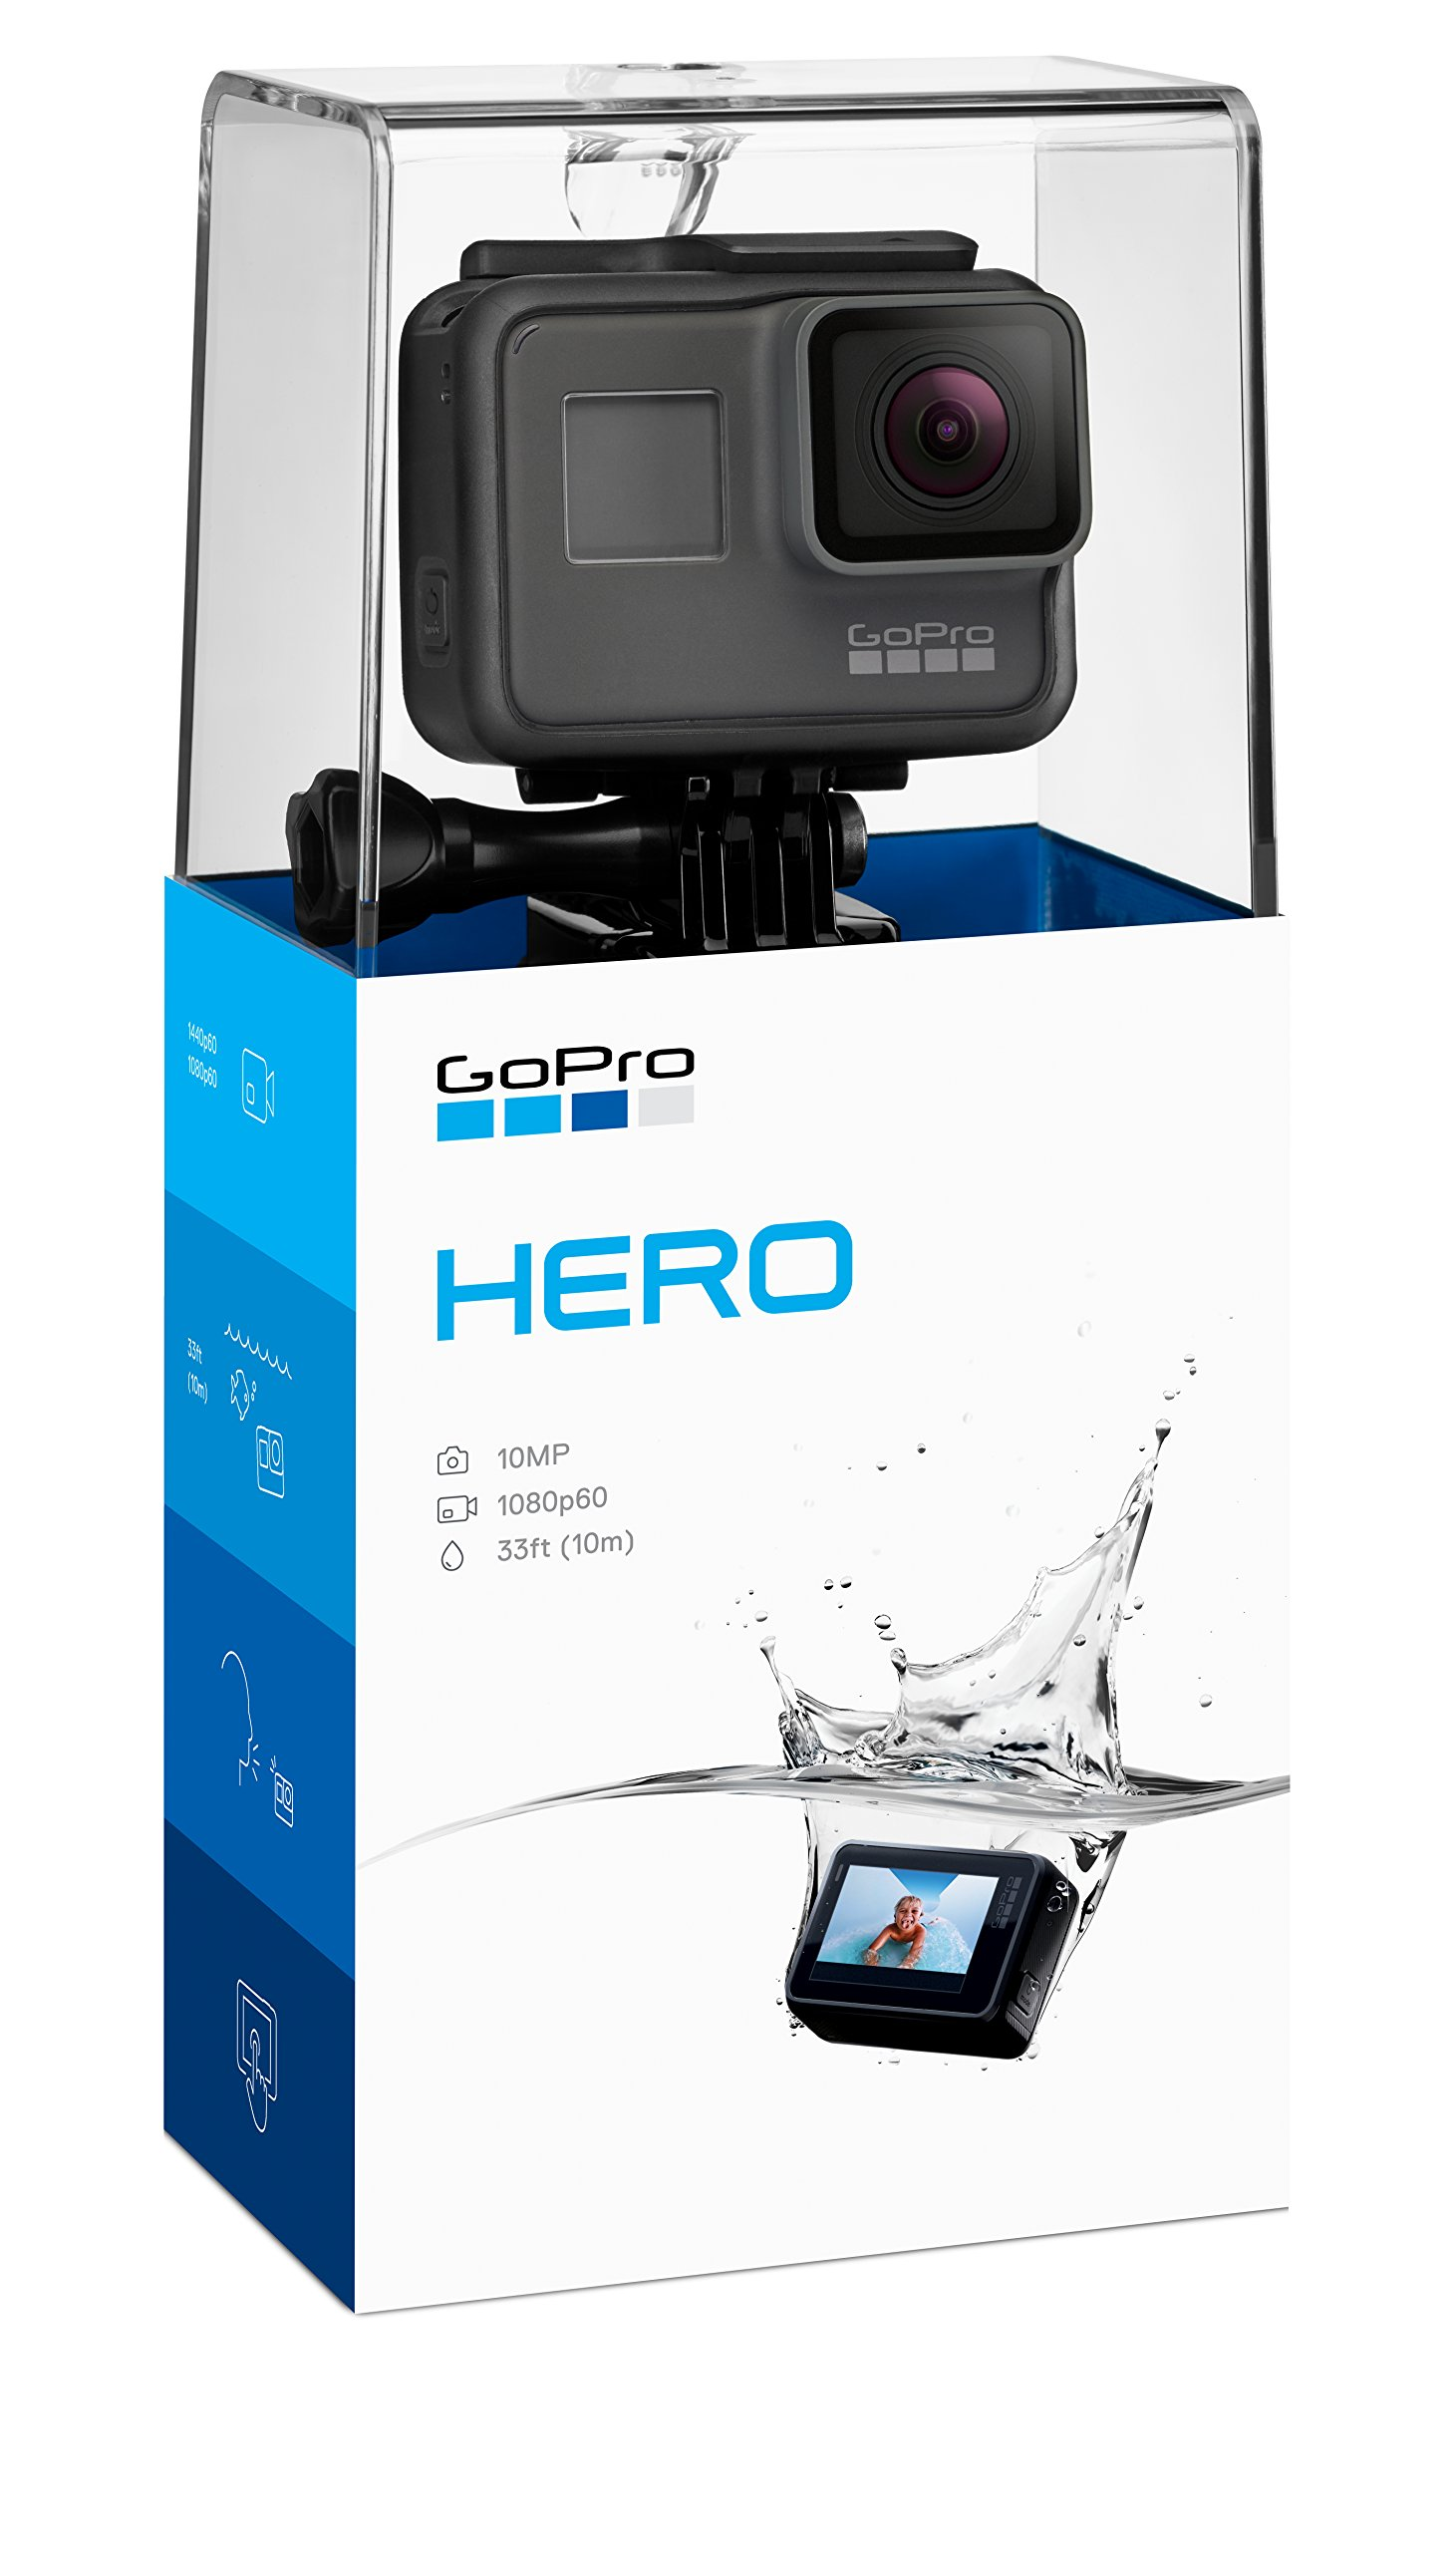 GoPro HERO - Waterproof Digital Action Camera for Travel with Touch Screen 1080p HD Video 10MP Photos by GoPro